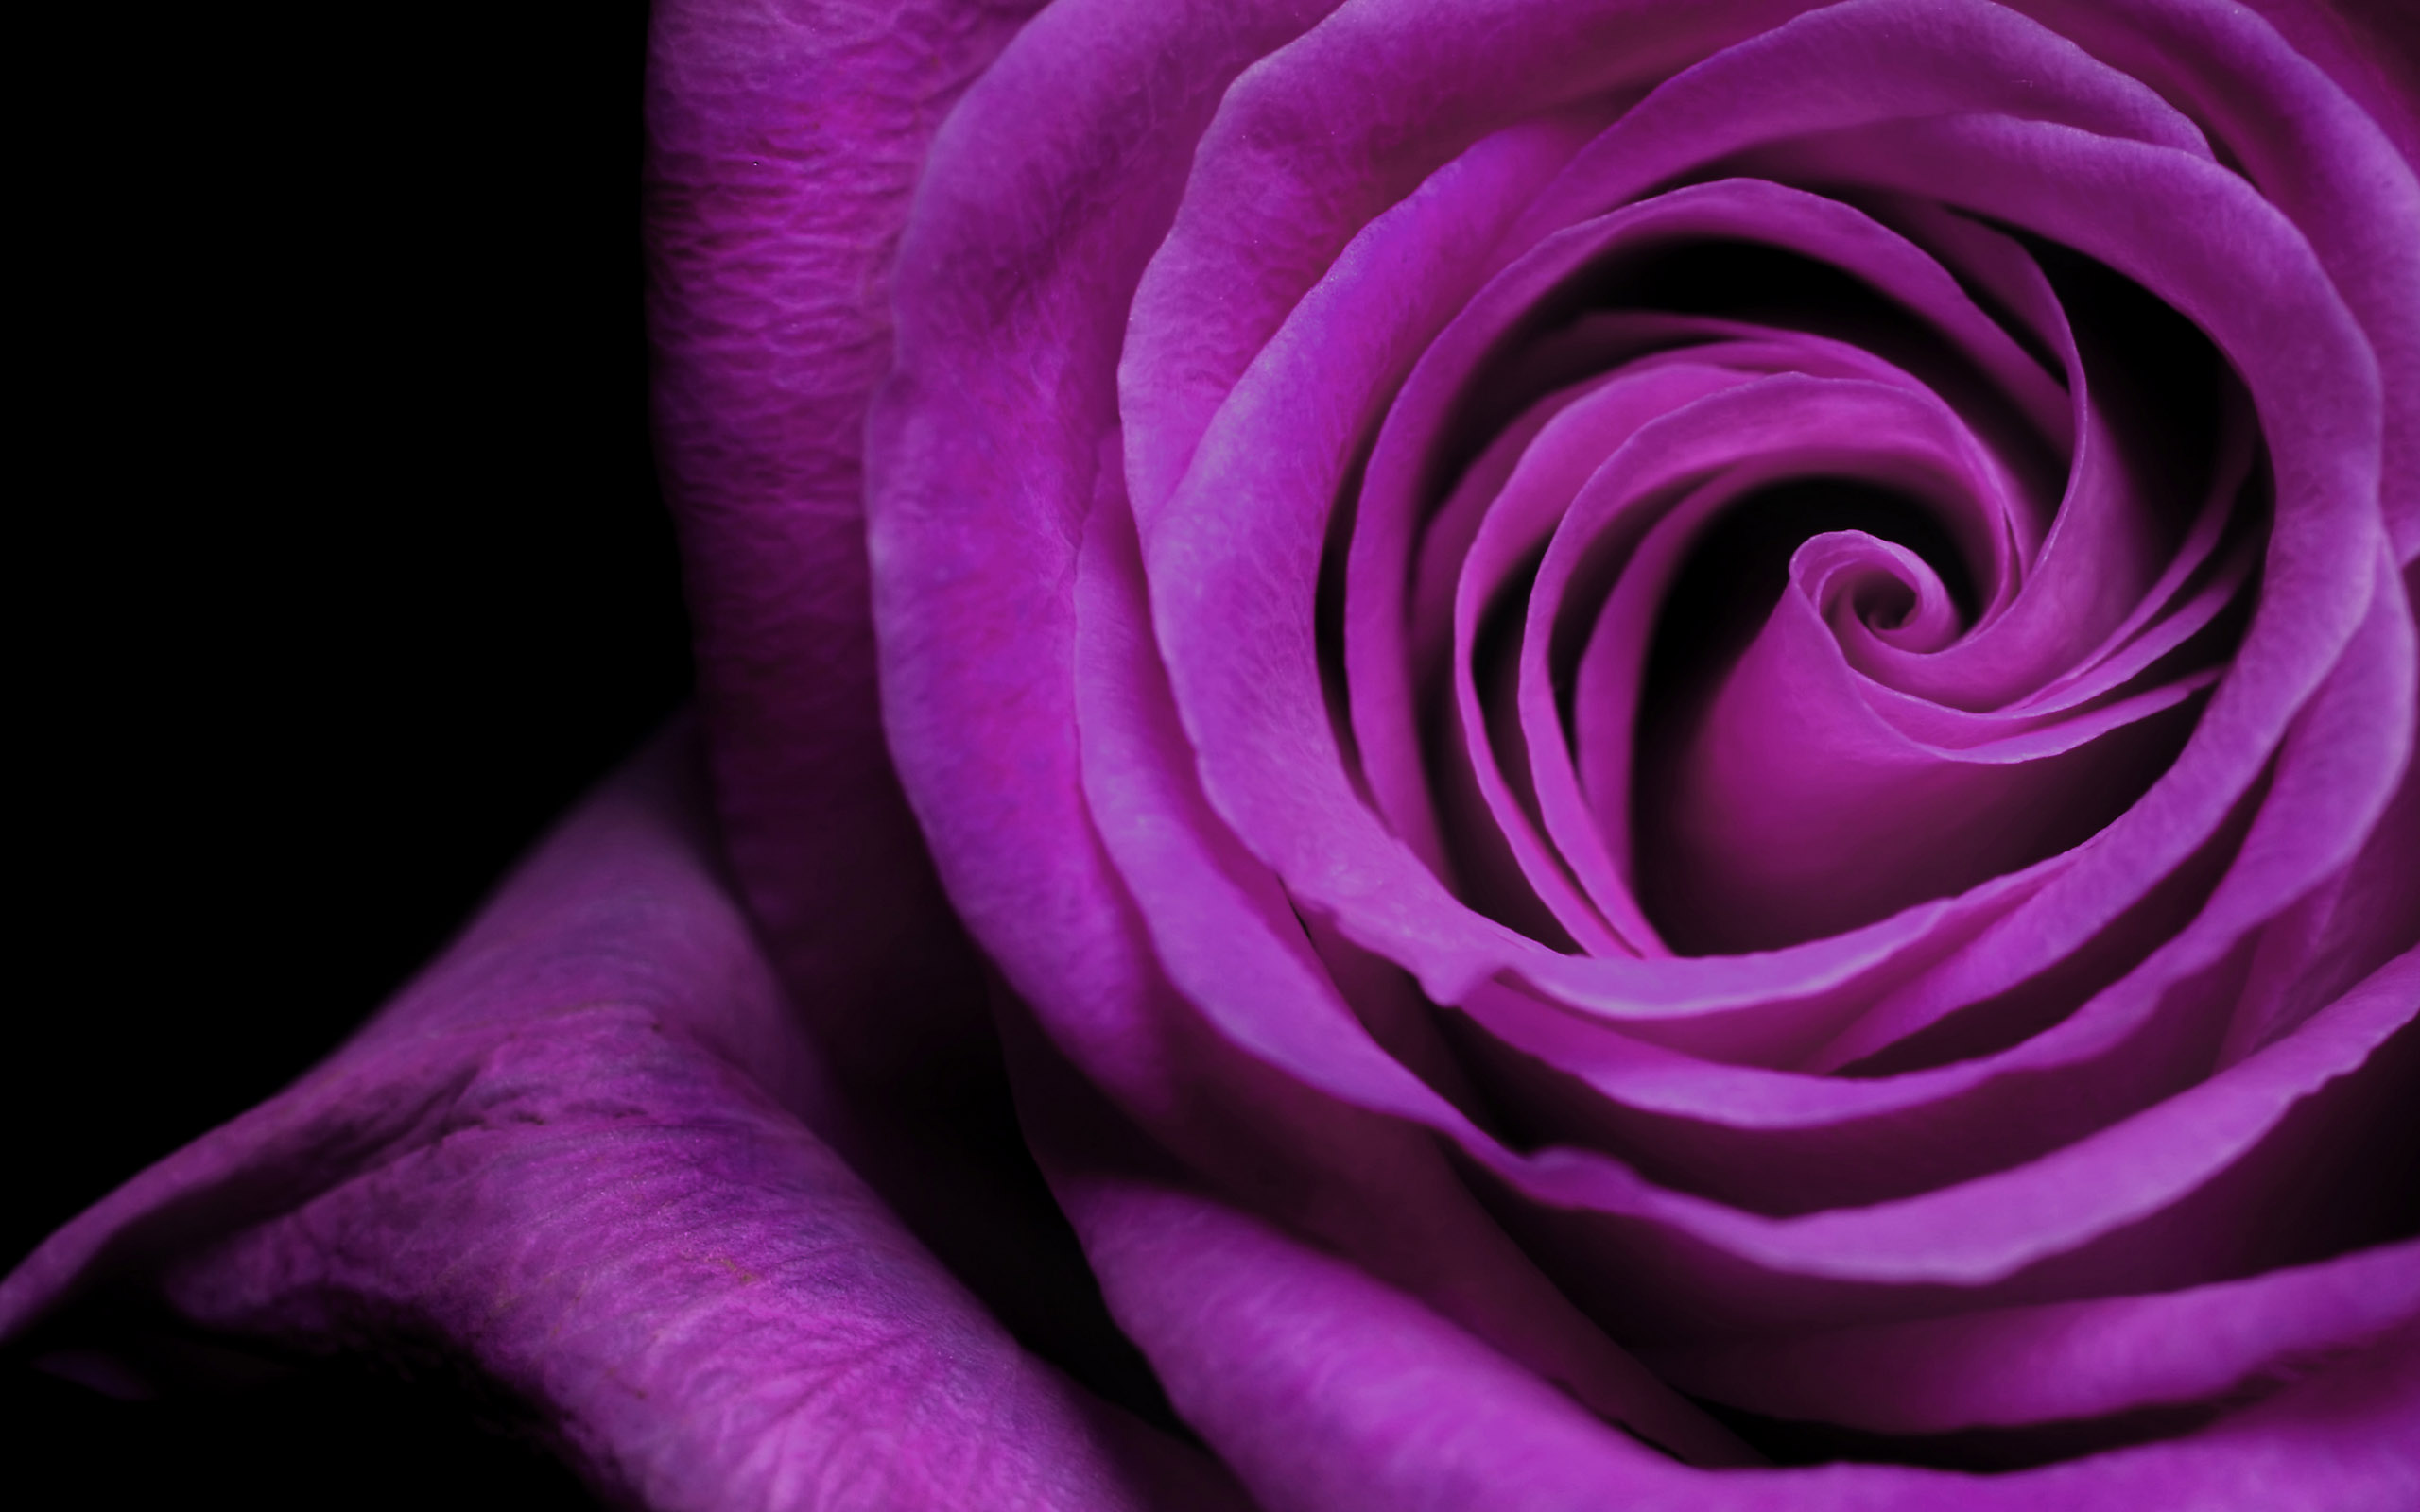 Flower wallpapers purple desktop hd desktop wallpapers 4k hd flower wallpapers purple desktop voltagebd Gallery